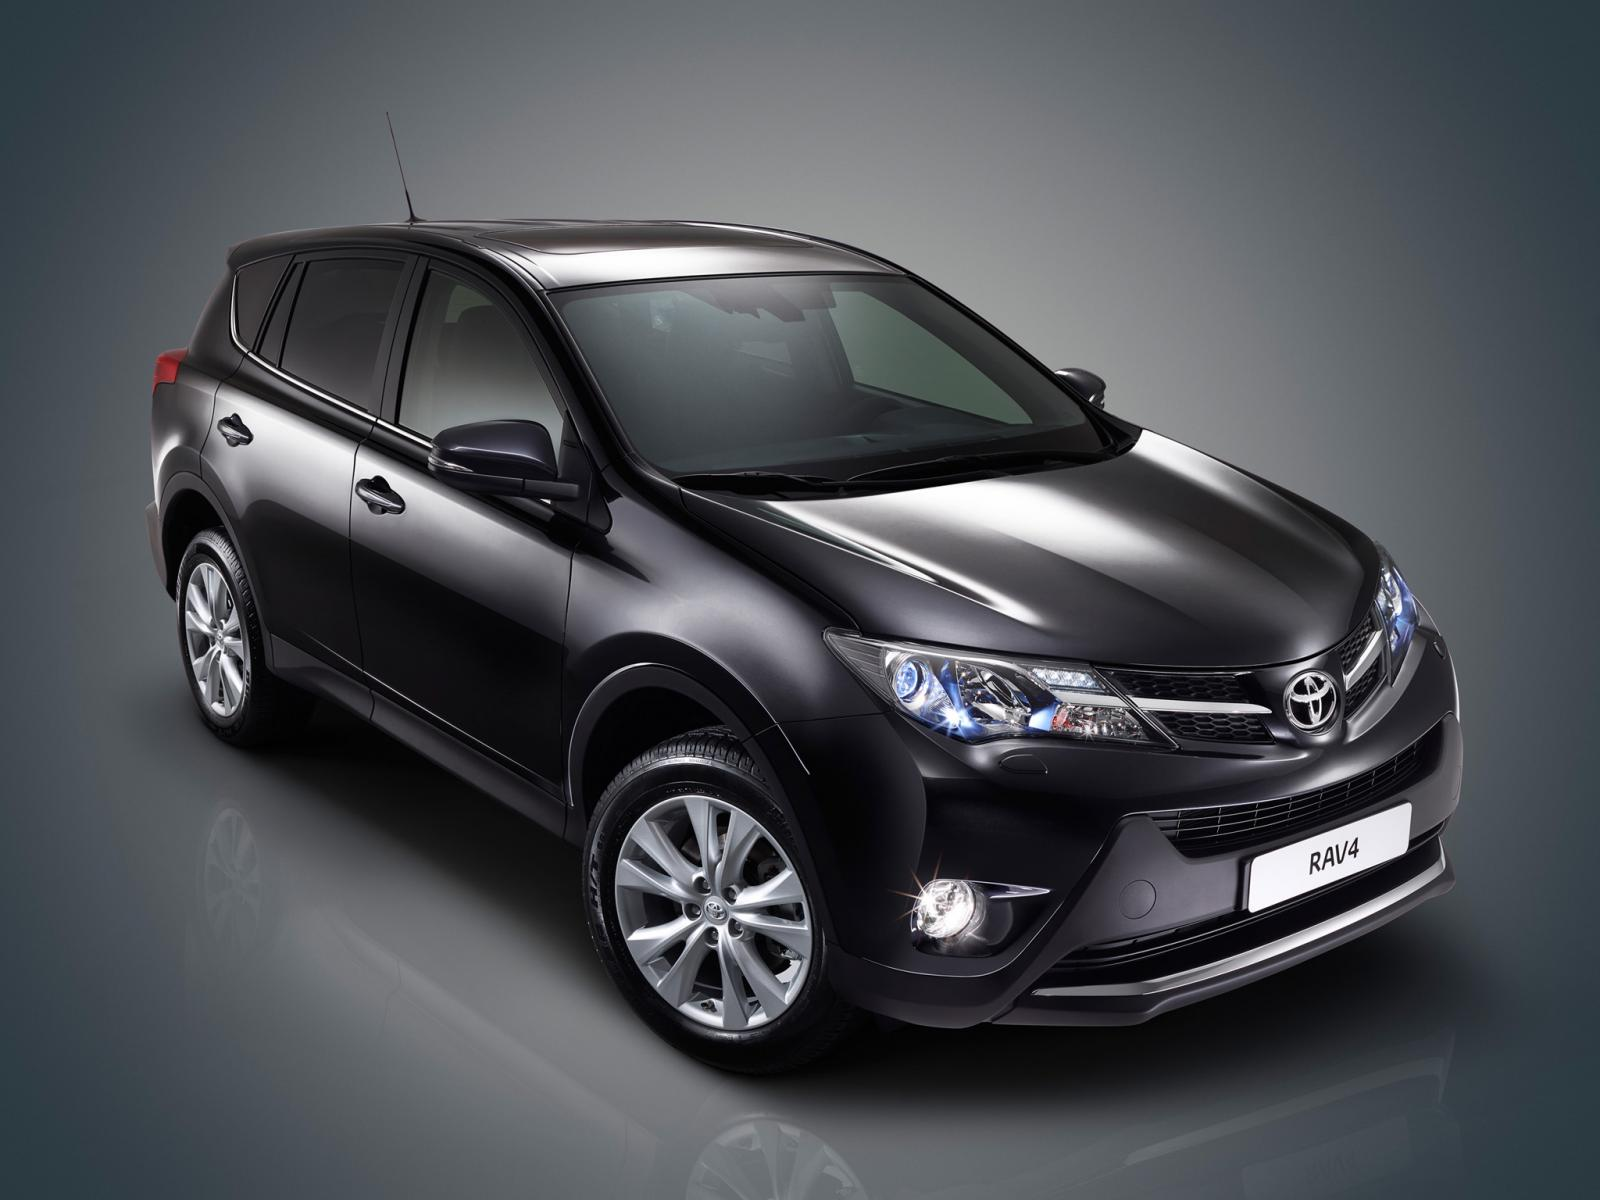 2014 toyota rav4 hybrid. Black Bedroom Furniture Sets. Home Design Ideas